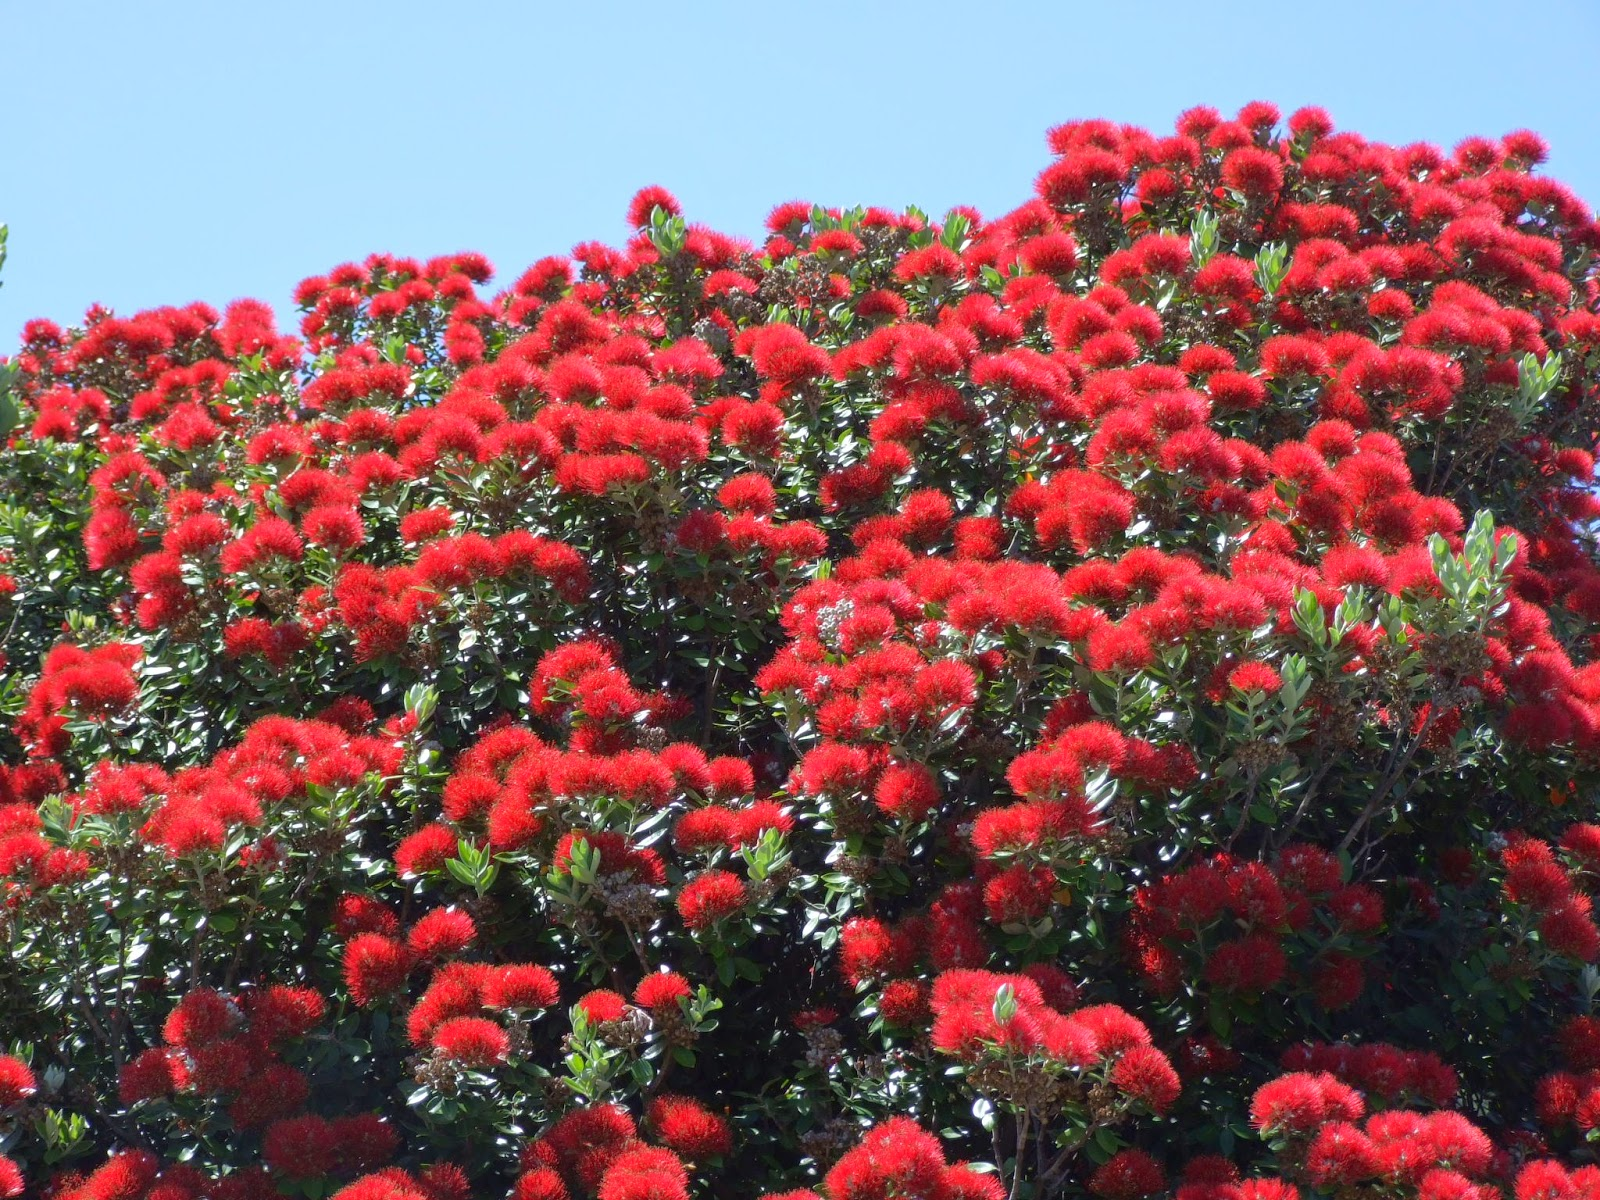 Alan Jolliffe Pohutukawa The New Zealand Christmas Tree